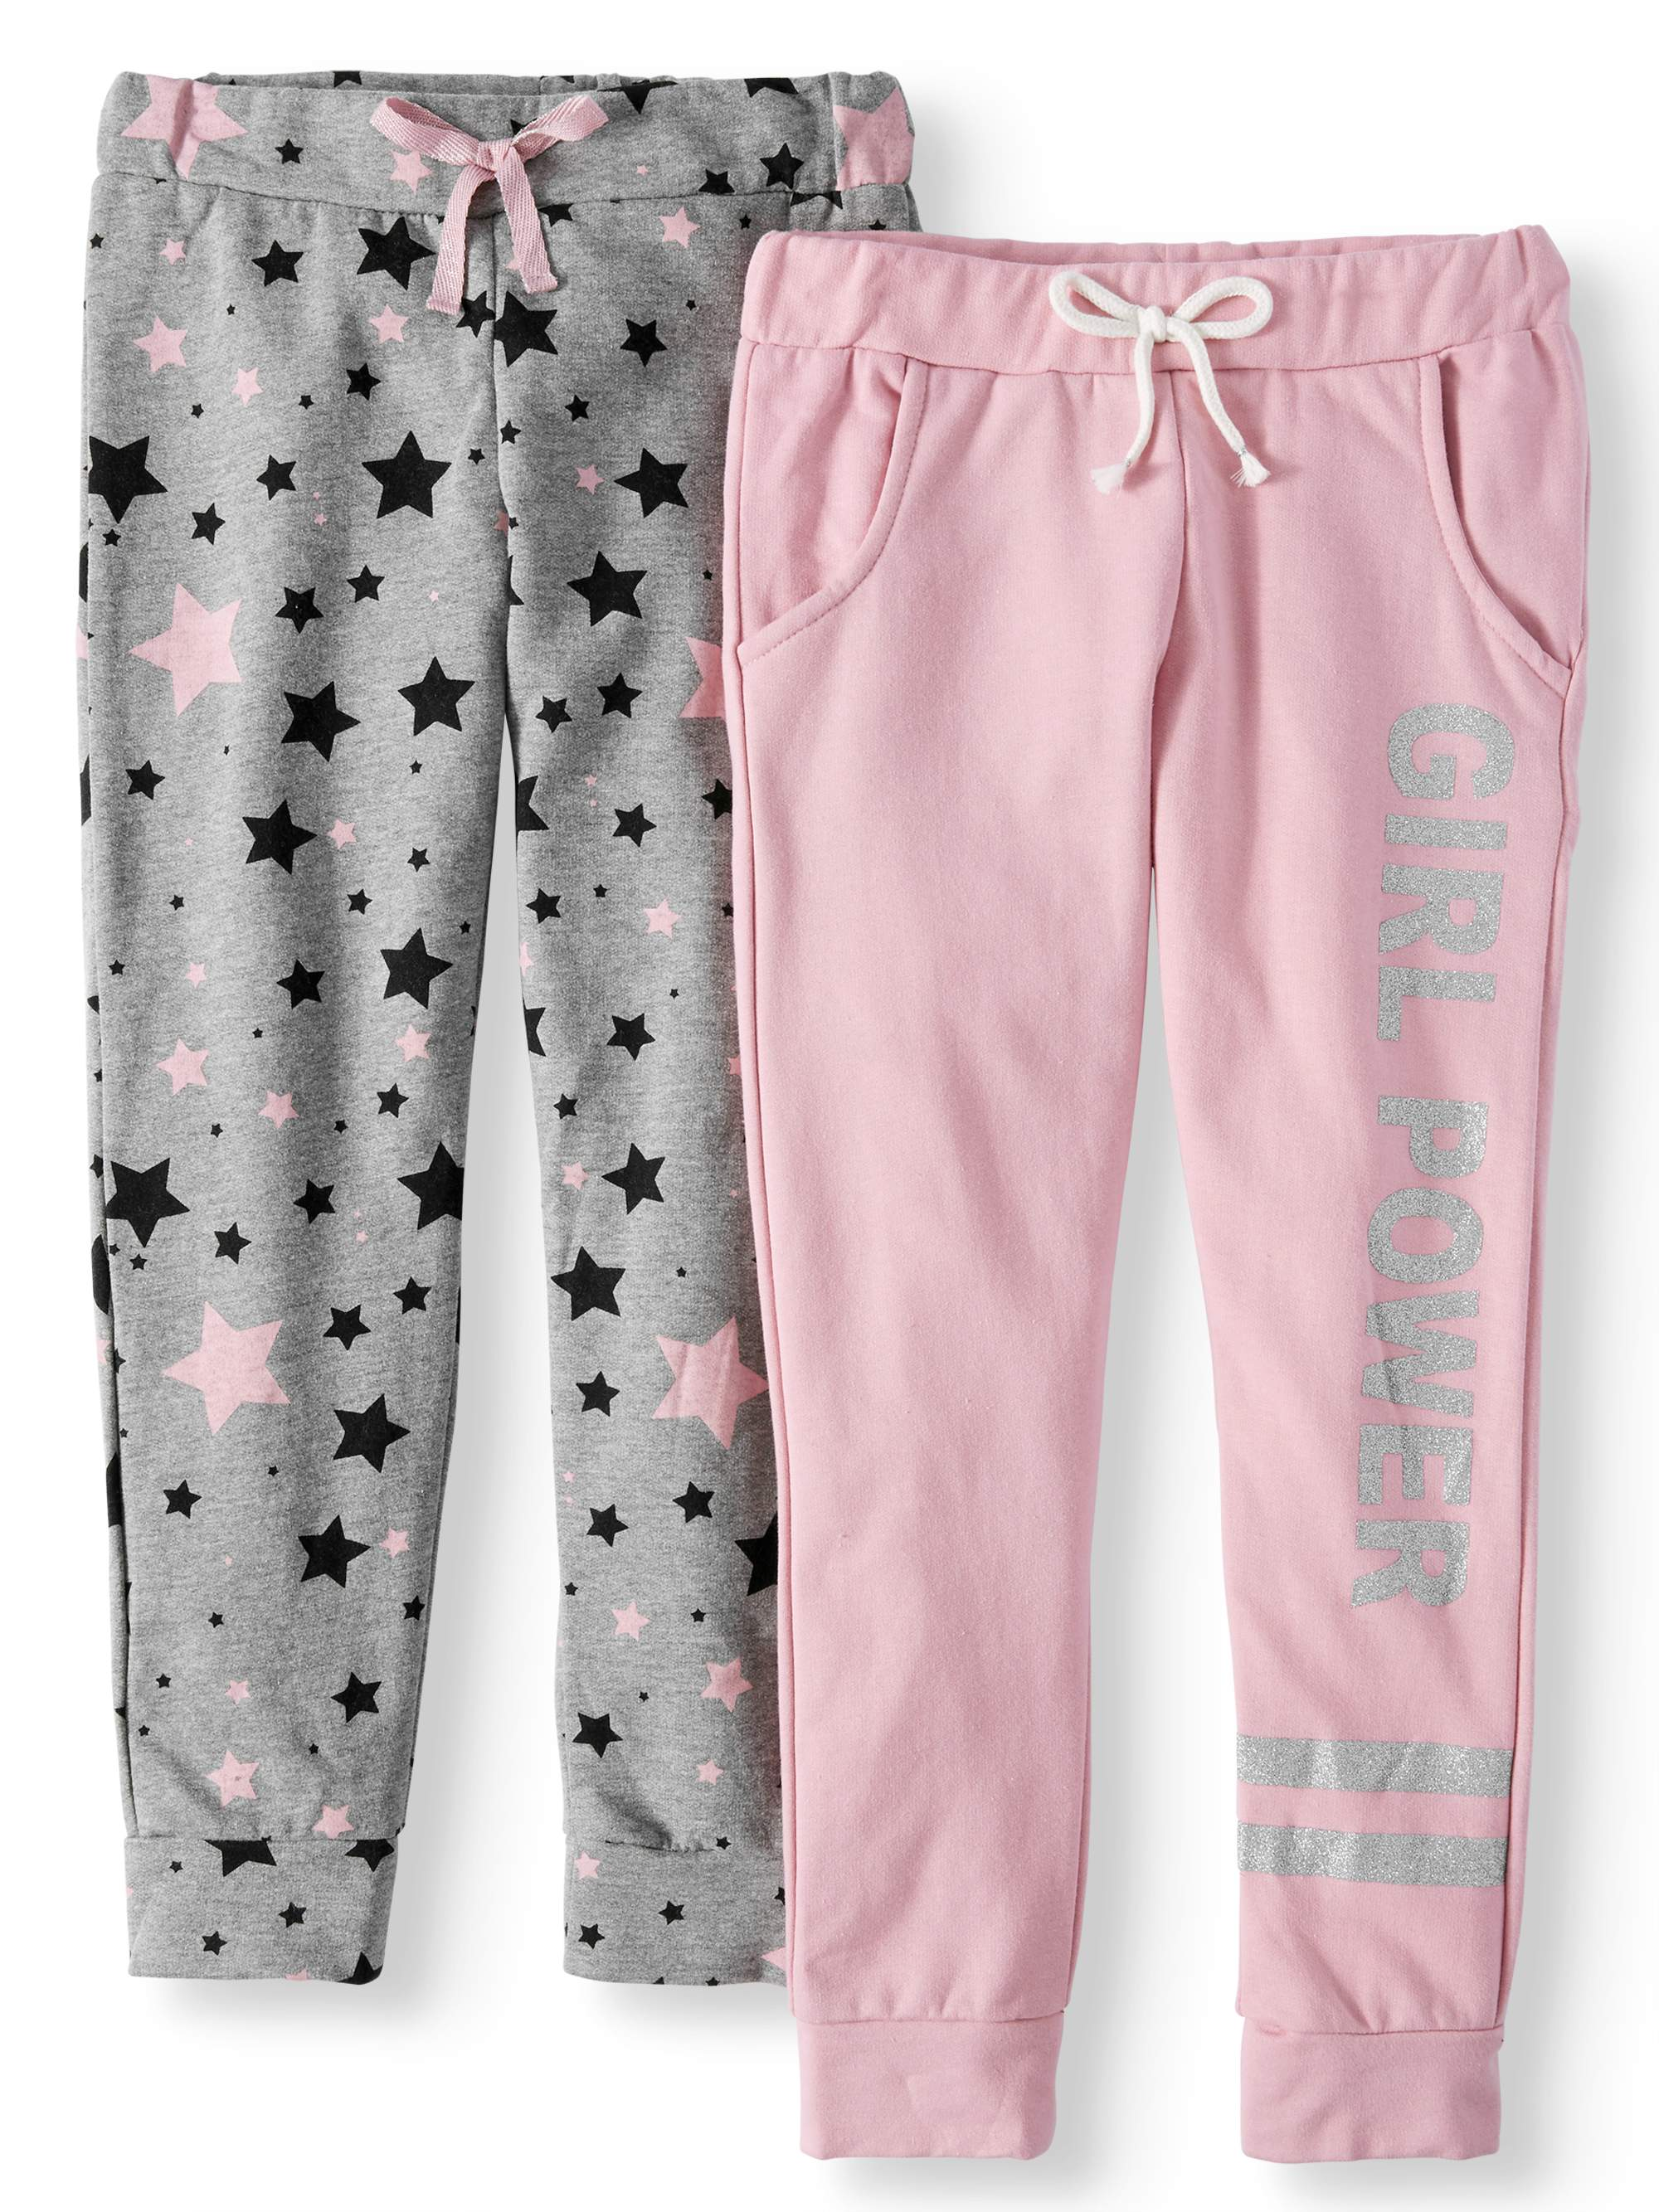 Glitter Graphic and All Over Print Joggers, 2-Pack (Little Girls & Big Girls)